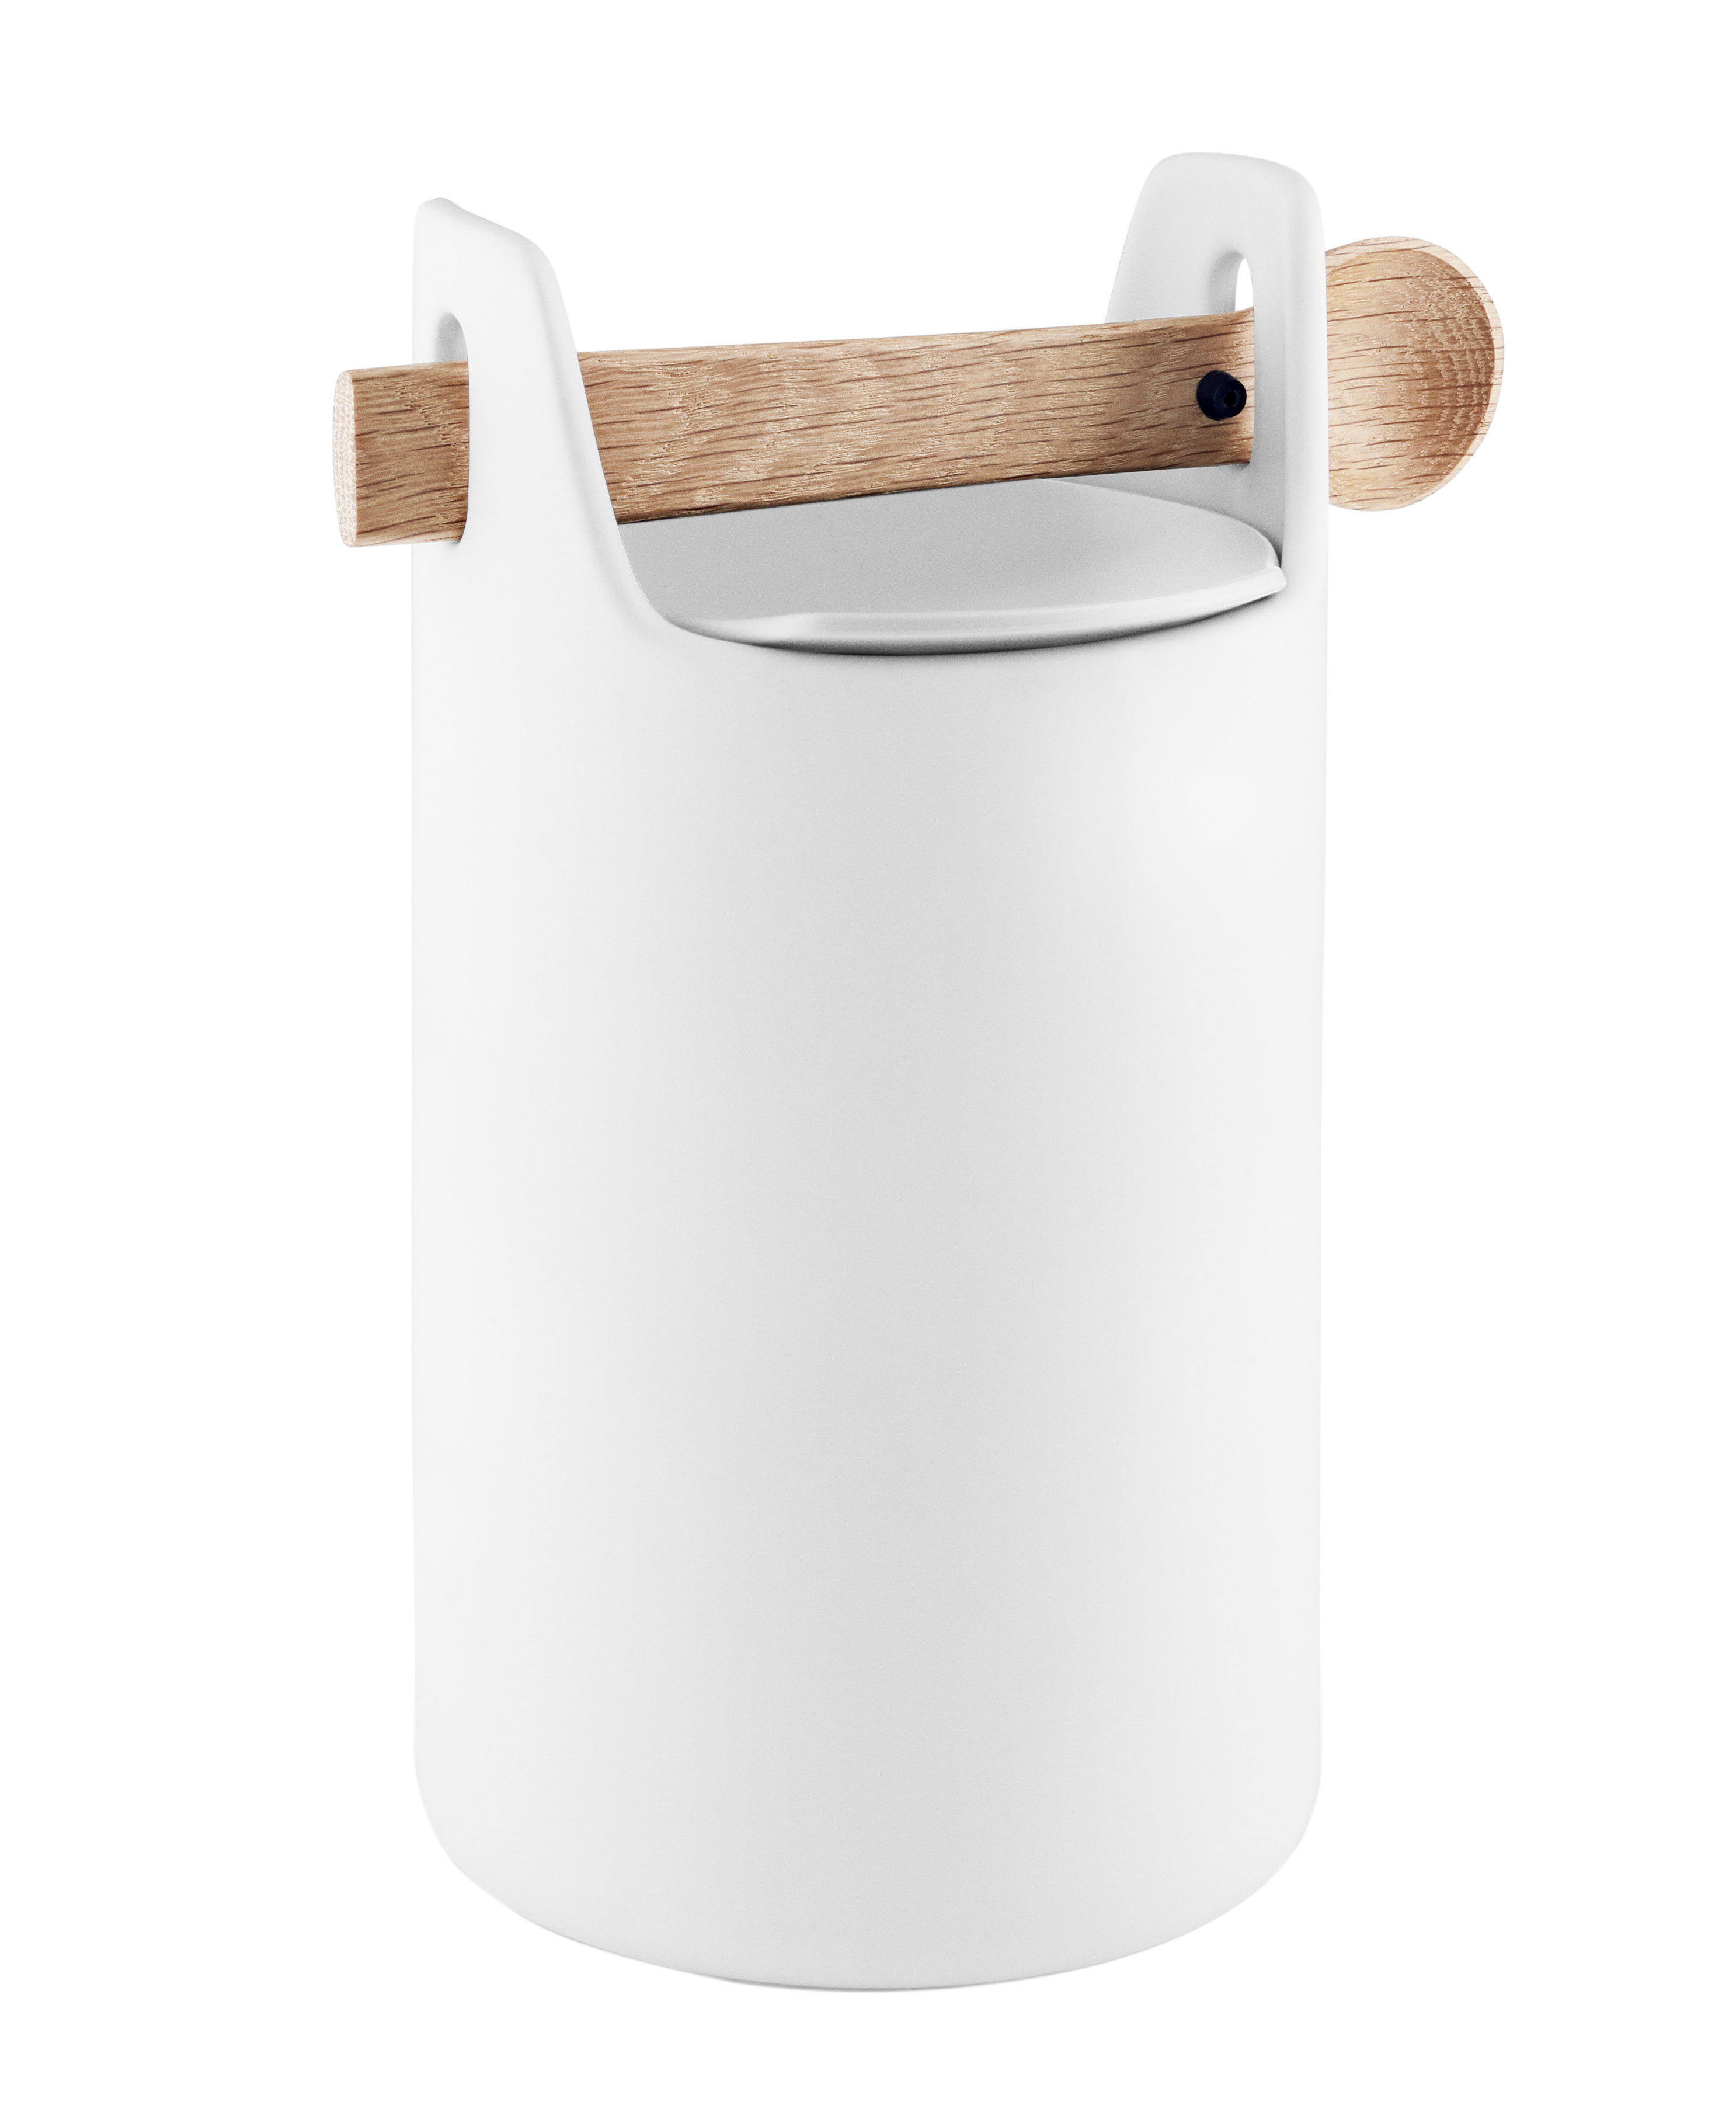 Kitchenware - Kitchen Storage Jars - Toolbox Large Airproof jar - / Wooden lid & spoon by Eva Solo - White / Oak - Ceramic, Silicone, Solid oak